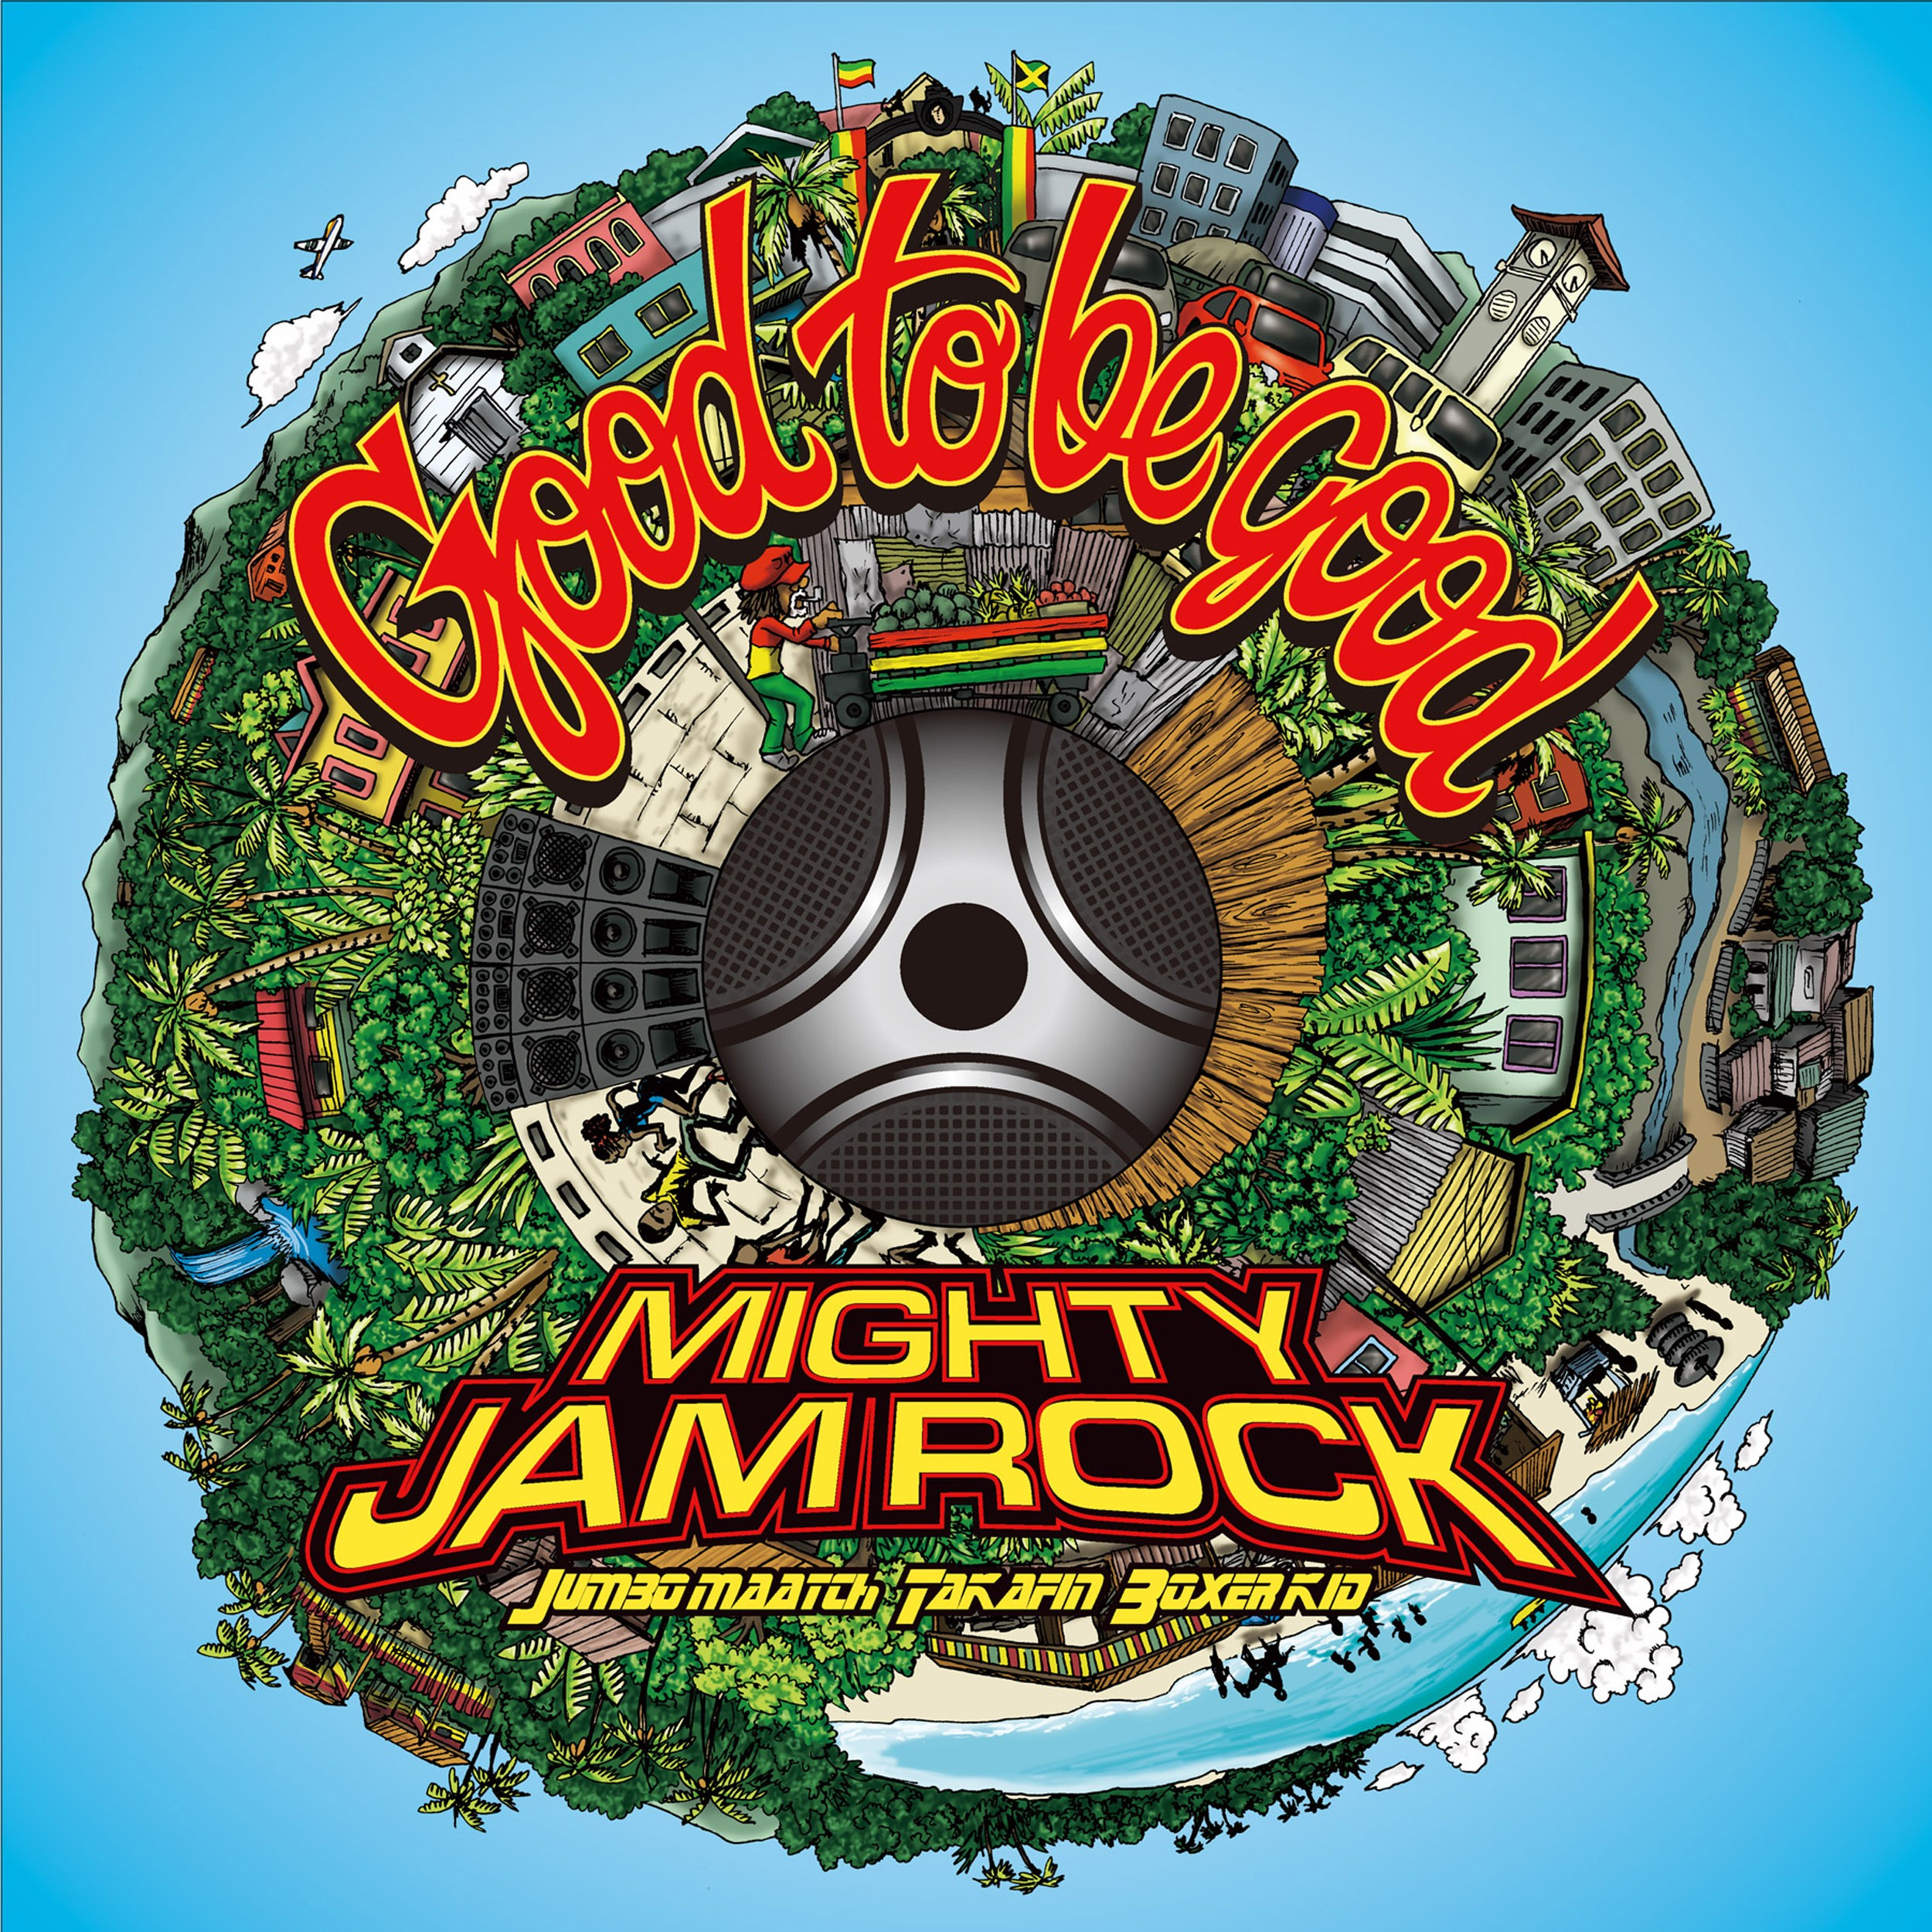 Image of Good to be good / MIGHTY JAM ROCK